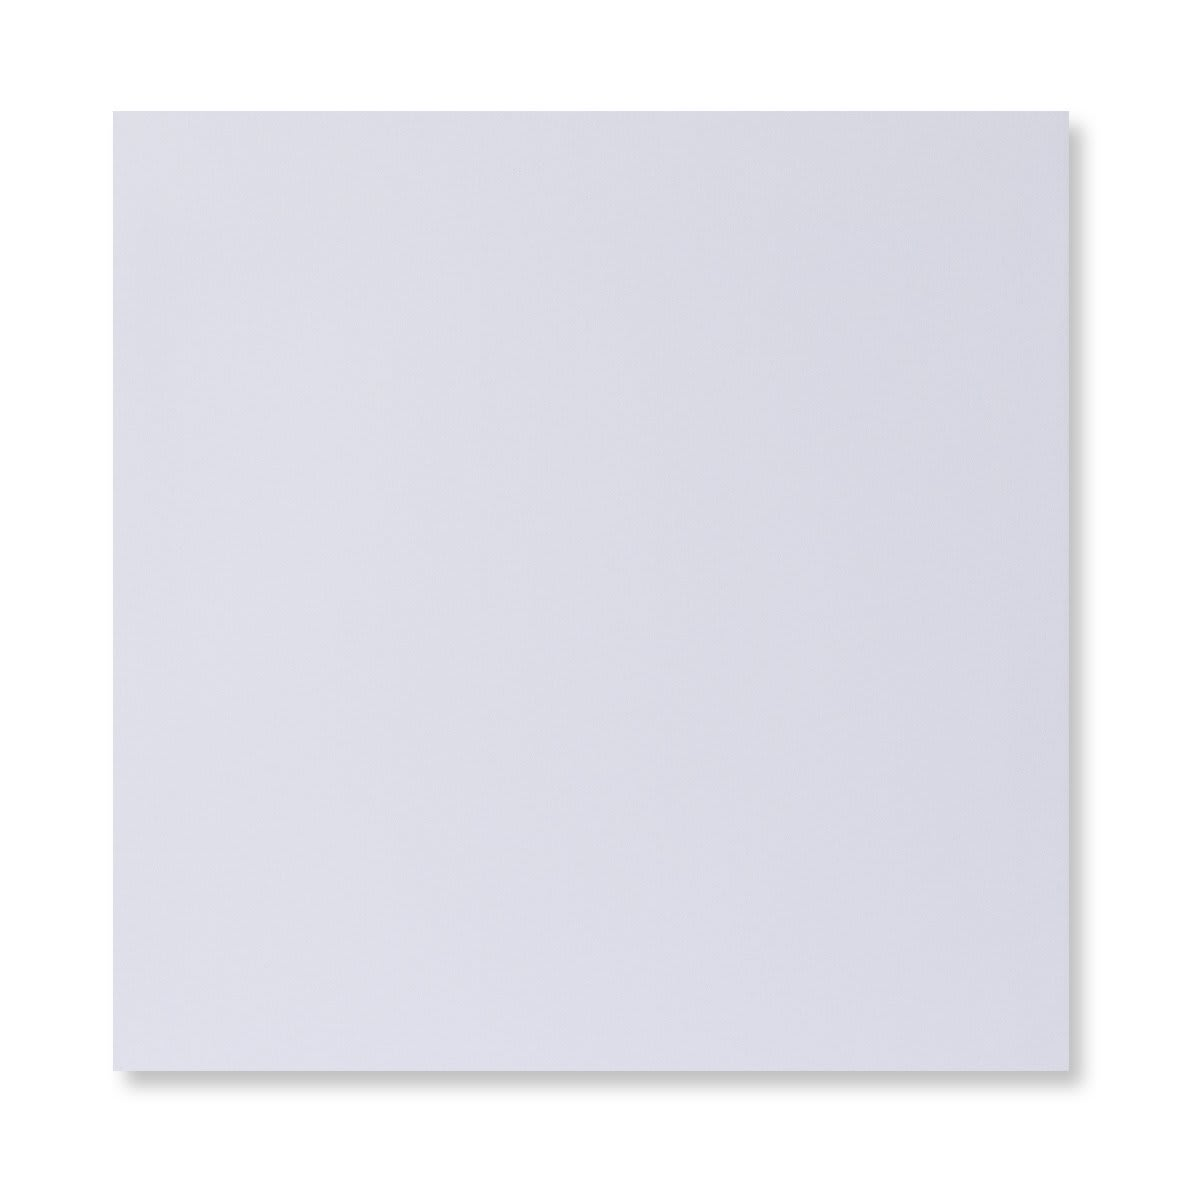 165MM SQUARE WHITE 120GSM PEEL AND SEAL ENVELOPES